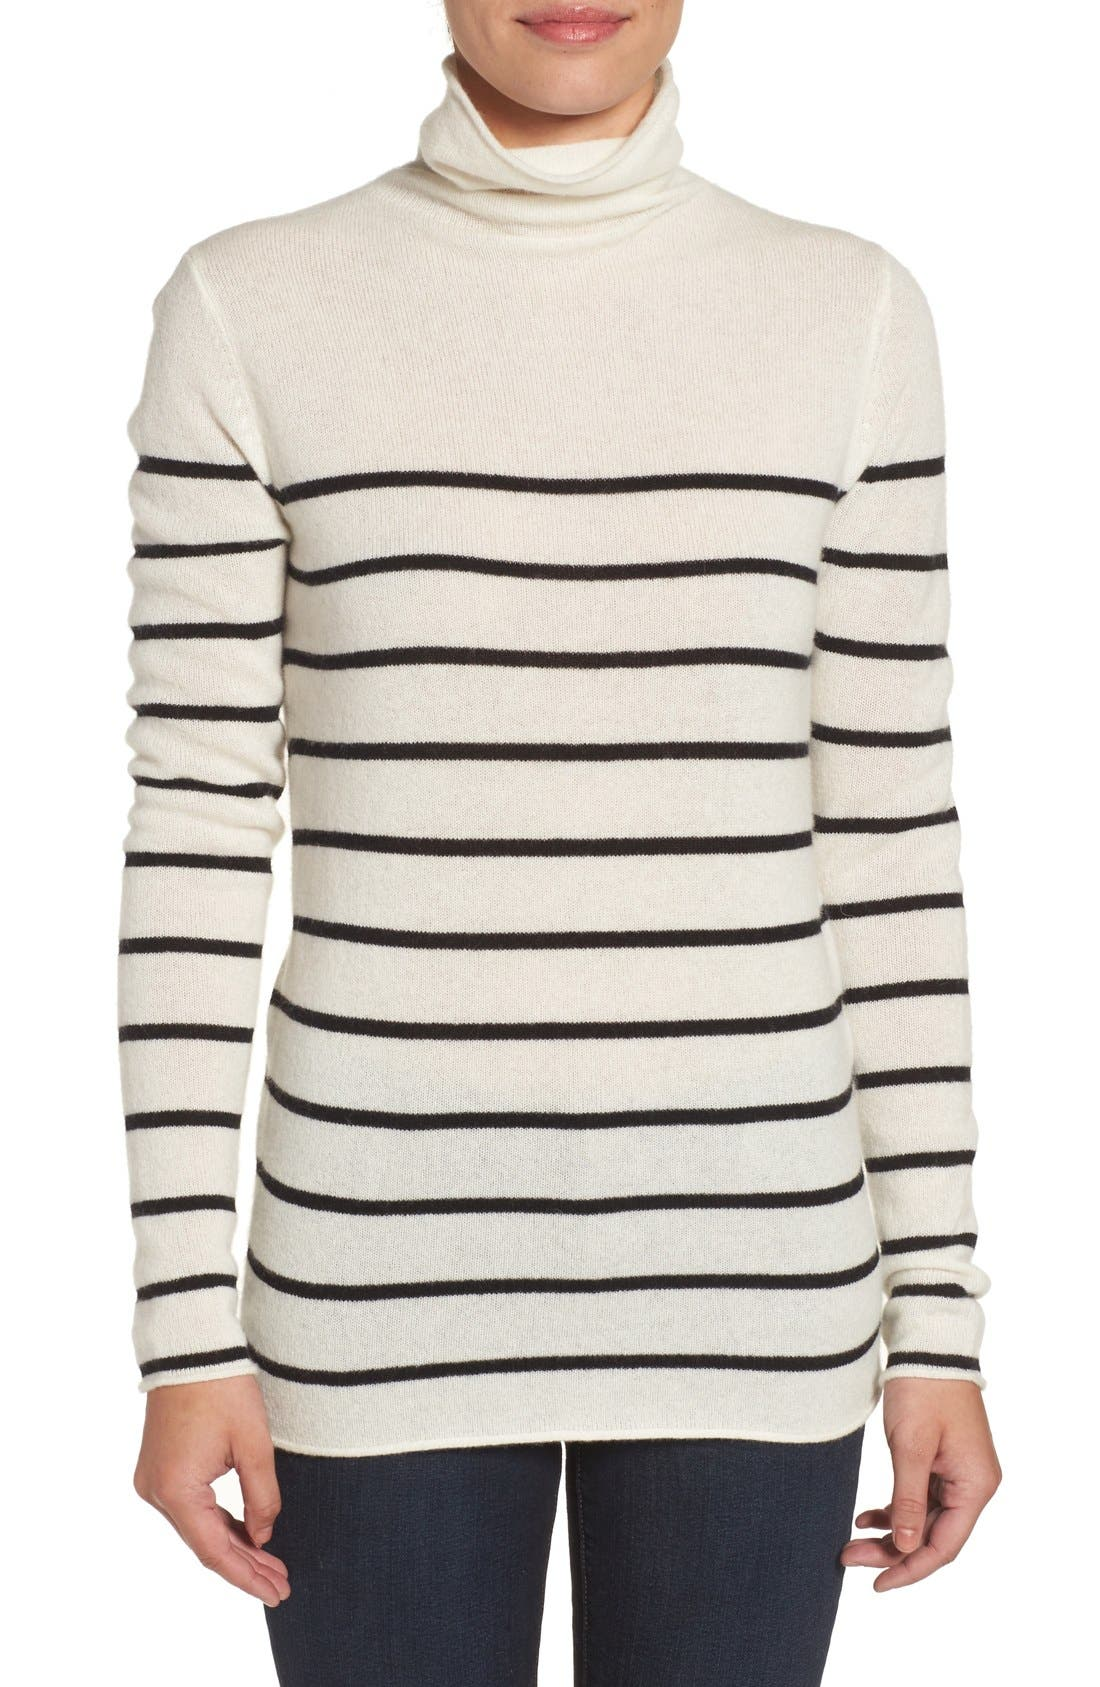 Wool & Cashmere Funnel Neck Sweater,                             Main thumbnail 1, color,                             Ivory- Black Stripe